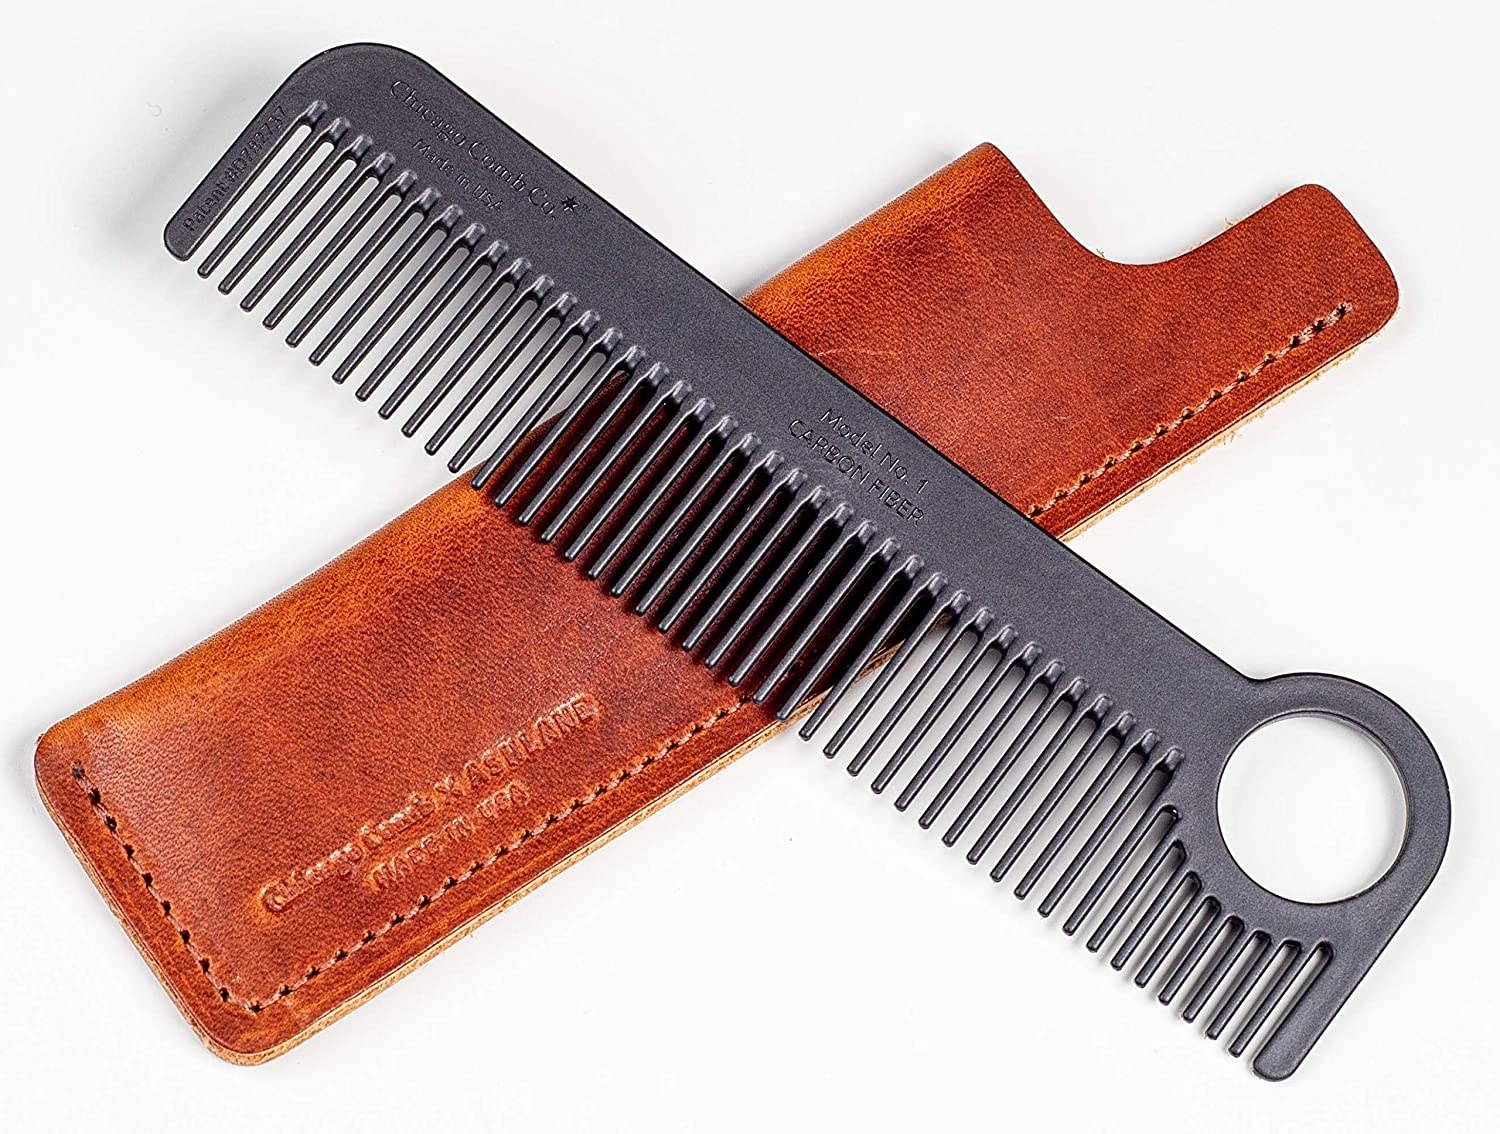 comb and leather carrying case